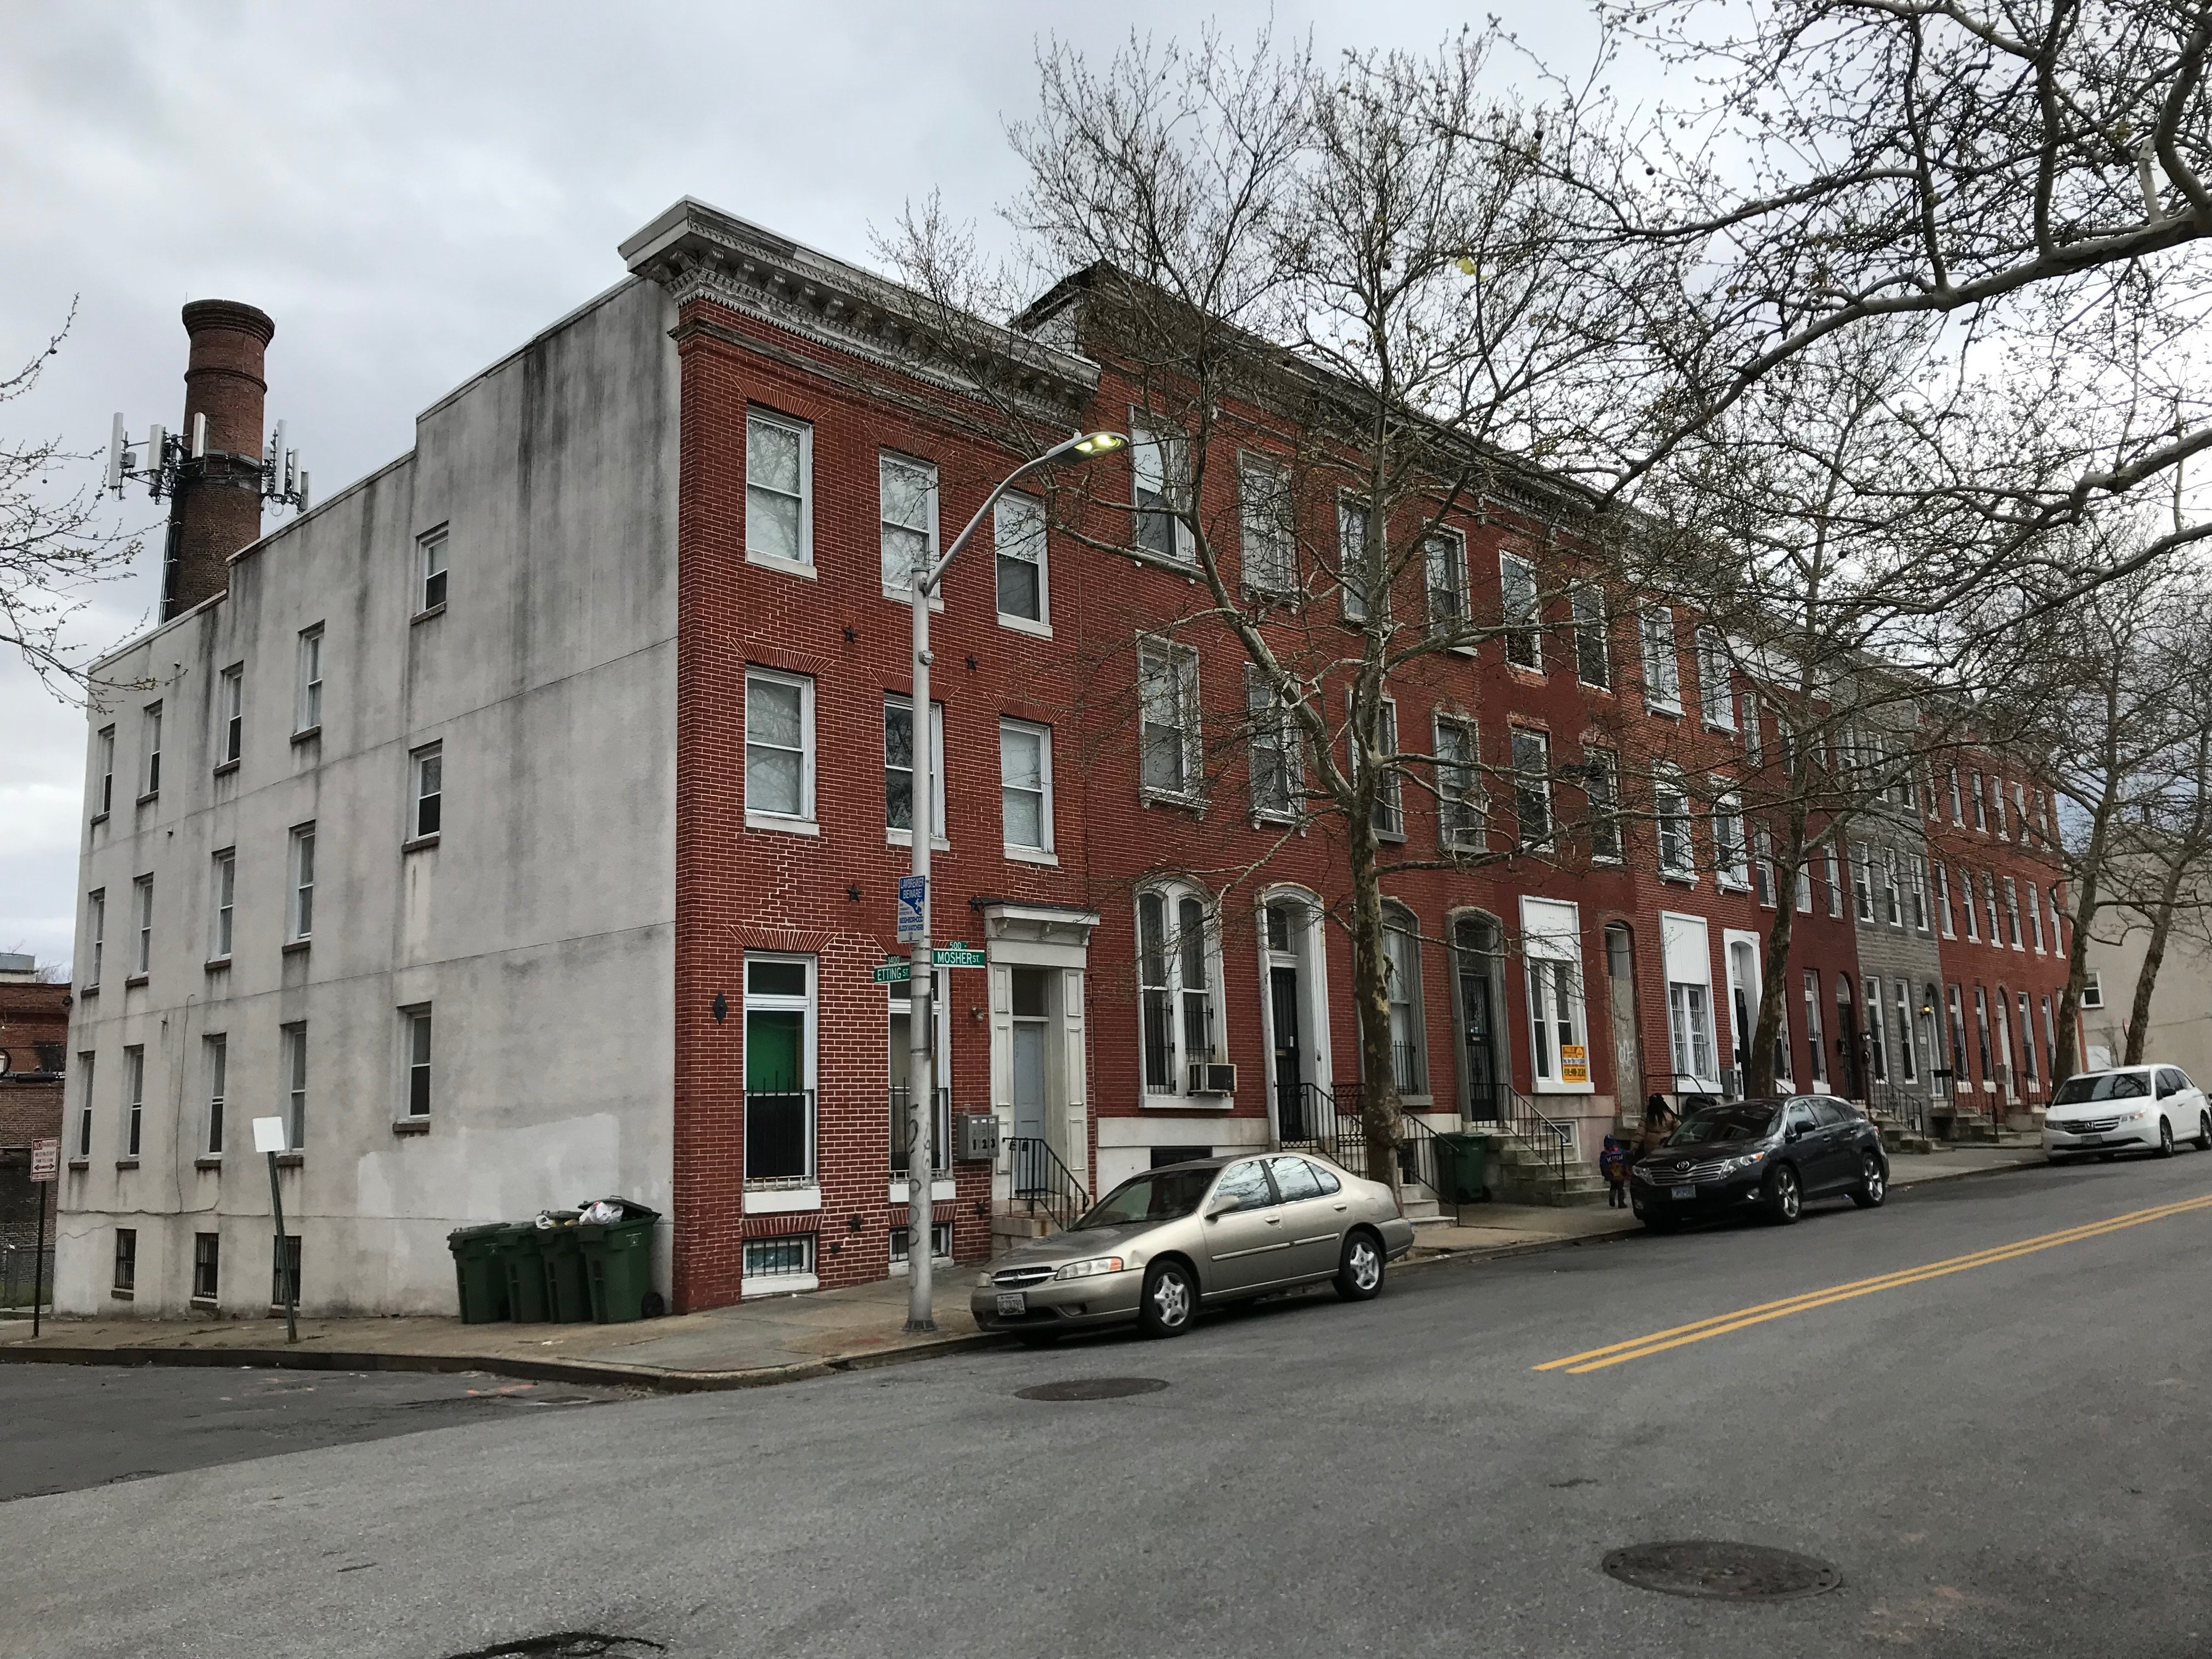 Rowhouses, 500 block of w. mosher street (south side), baltimore, md 21217 photo